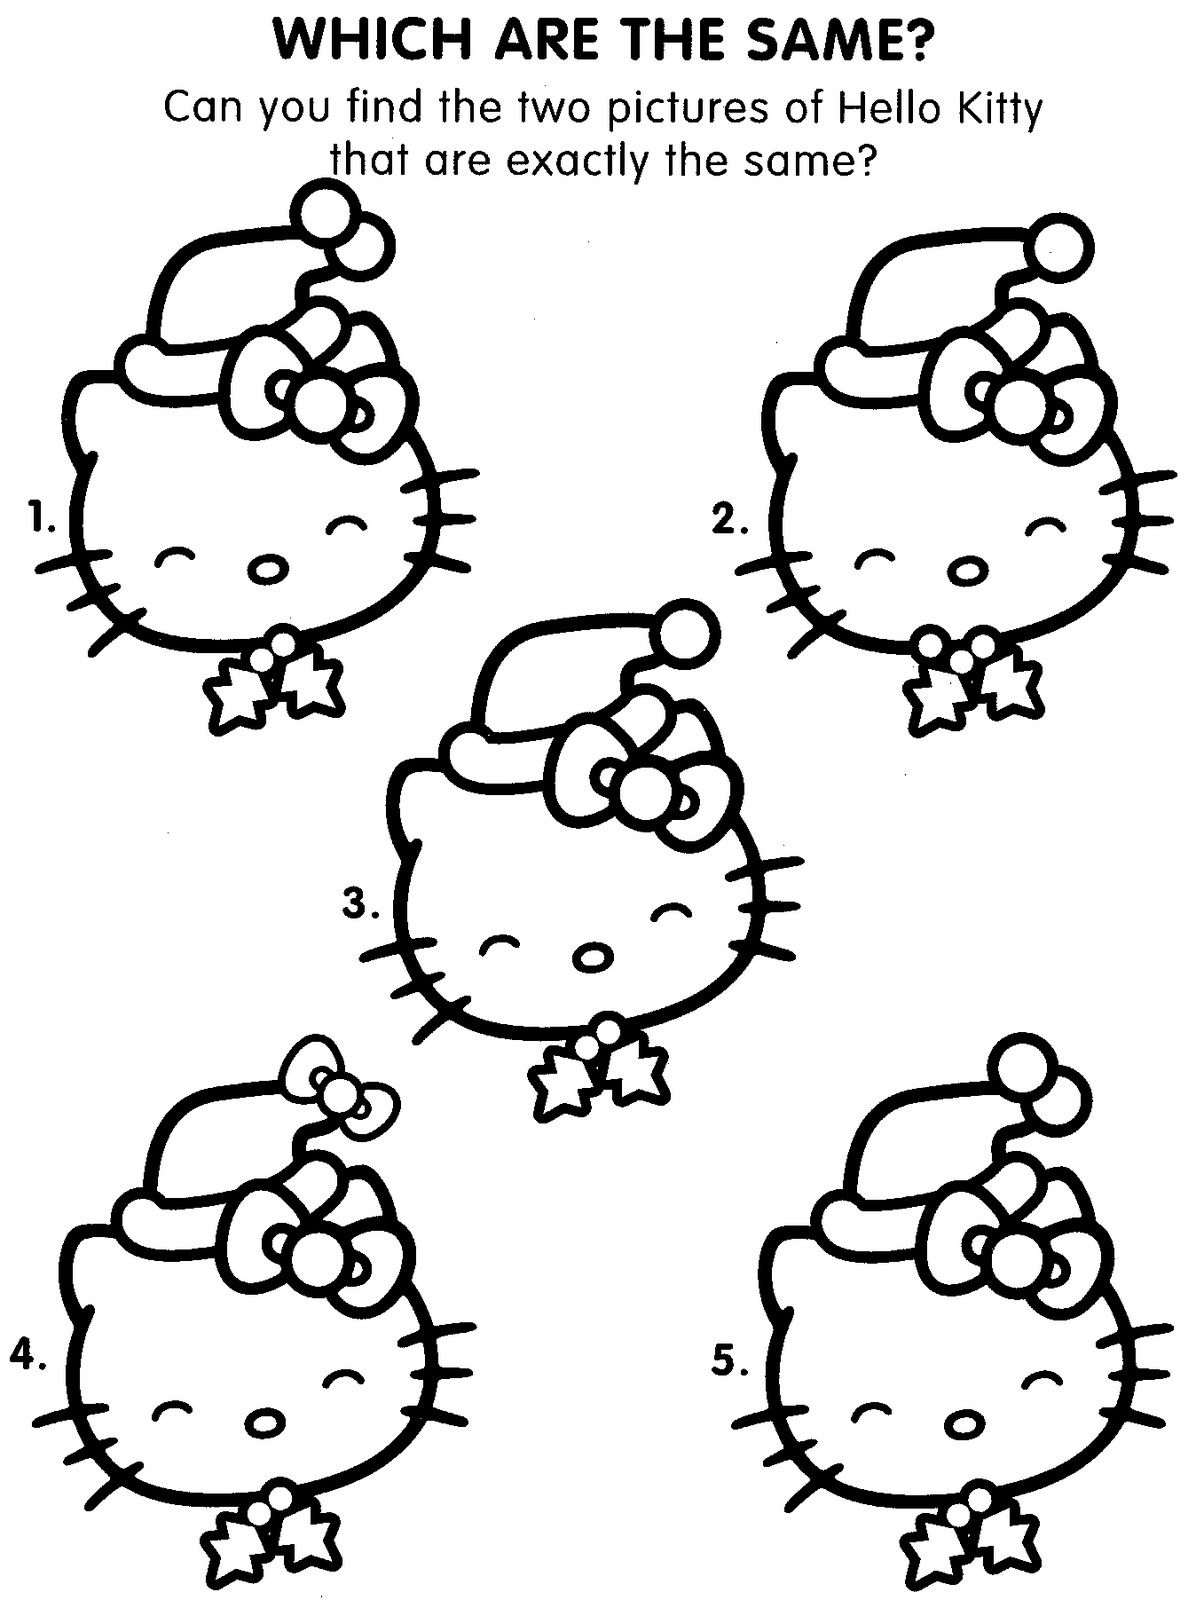 Free printable coloring pages xmas - Hundreds Of Free Printable Xmas Coloring Pages And Xmas Activity Sheets For Children Of All Ages